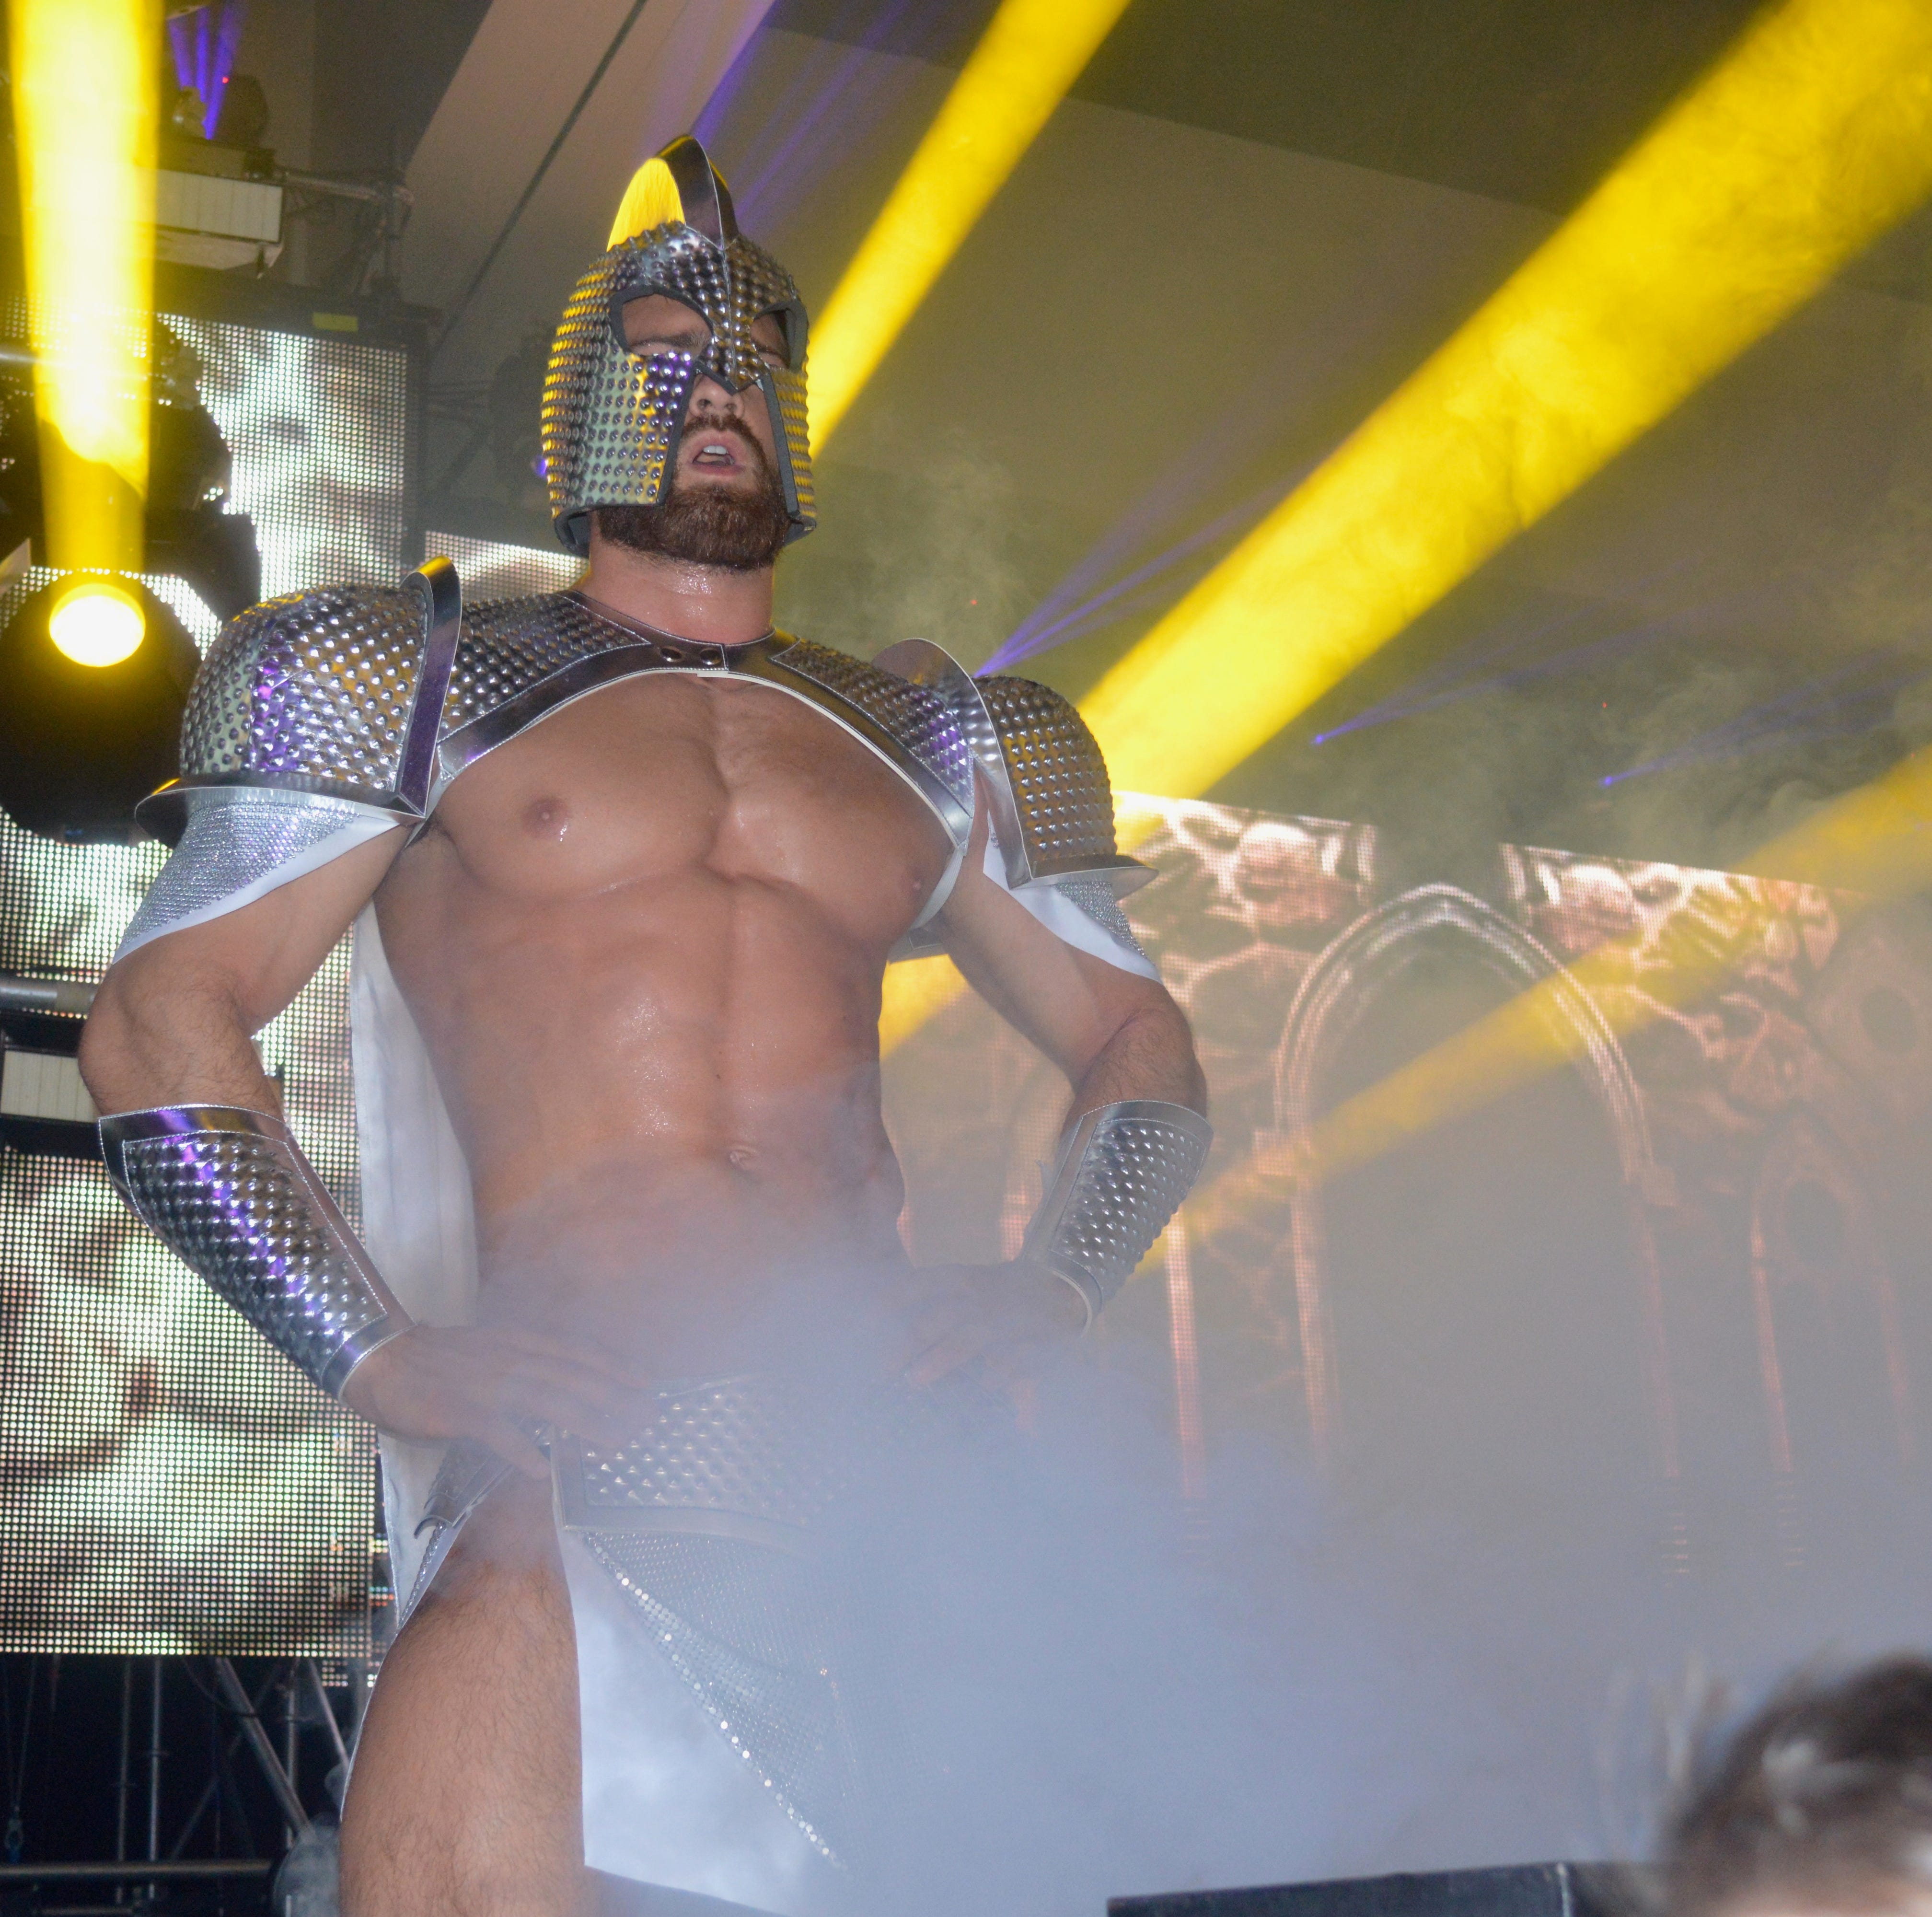 White Party 2019: What to expect from weekend of parties in Palm Springs